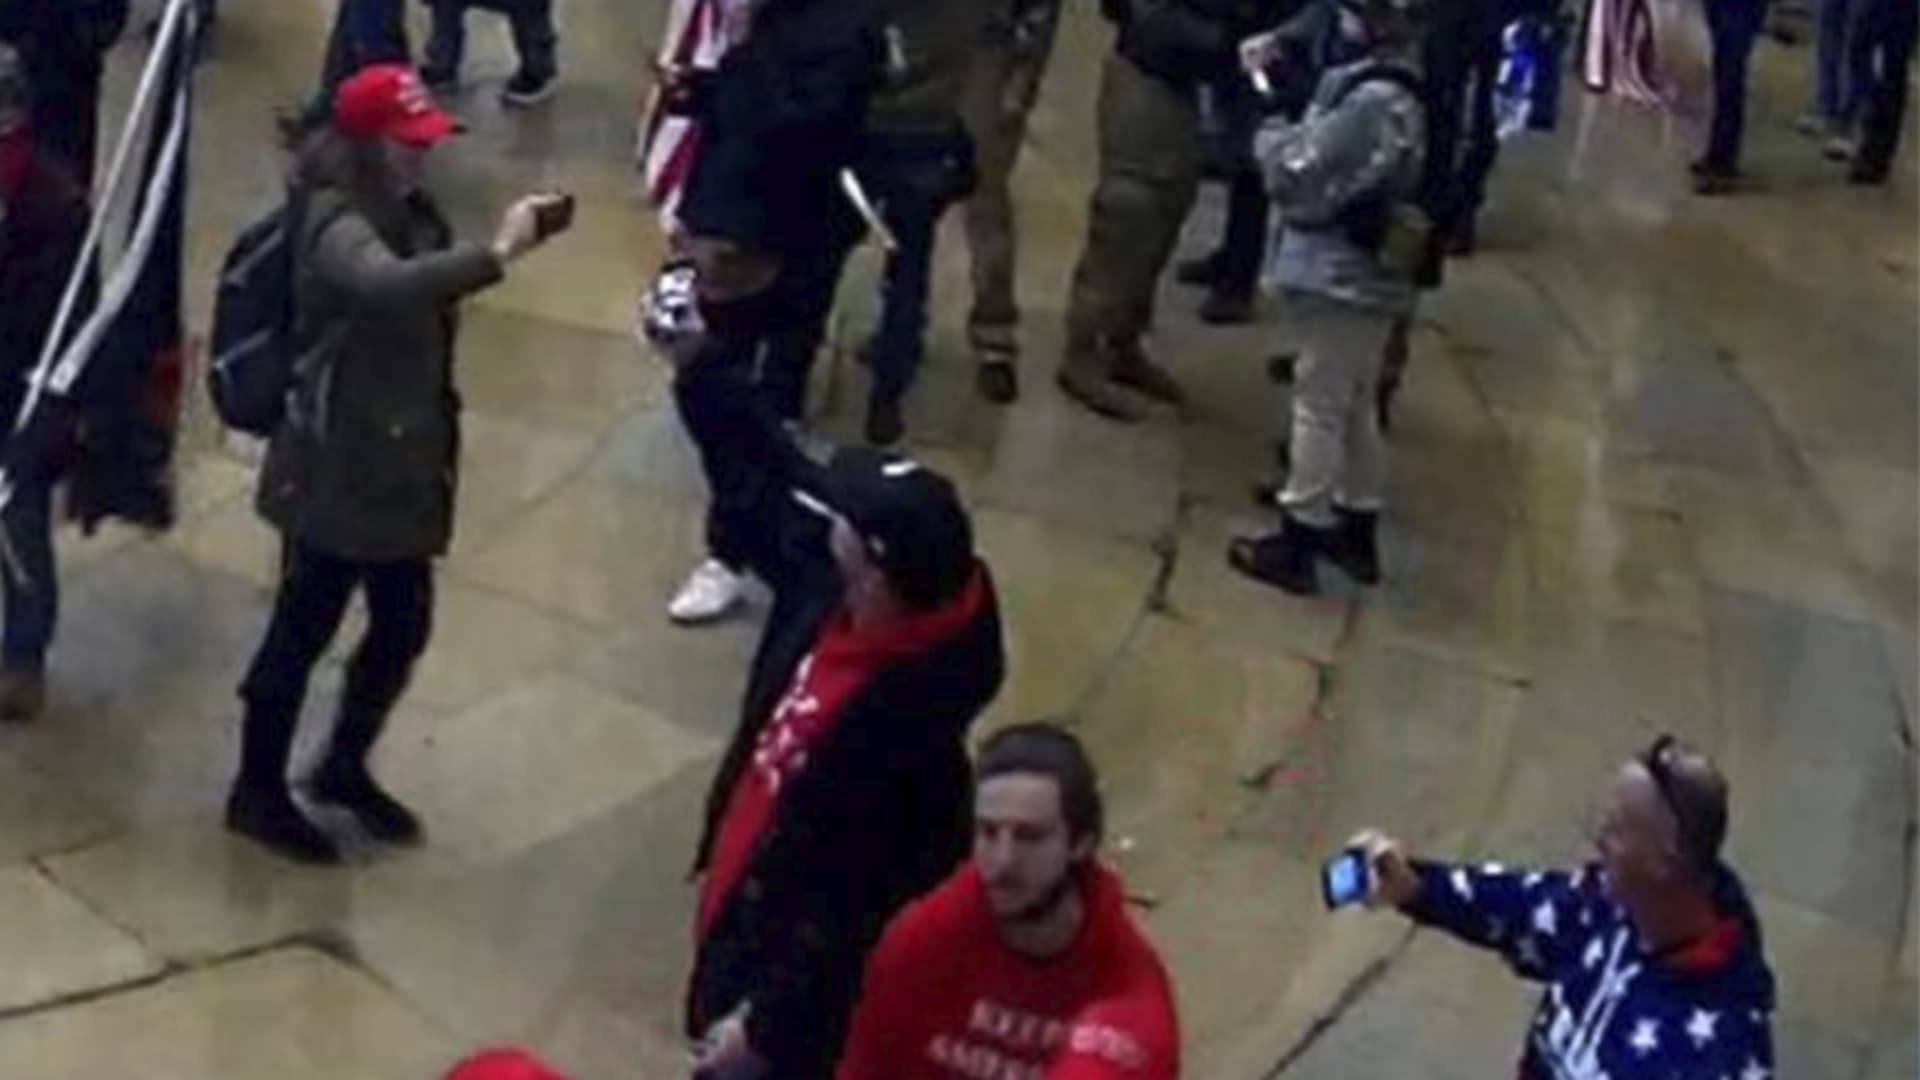 DOJ submits photos as part of a Statement of Facts, identifying Former NYPD officer Sara Carpenter (dressed in red hat, green jacket wearing a grey backpack), participating in the Capitol Riots on Jan. 6th, 2021.